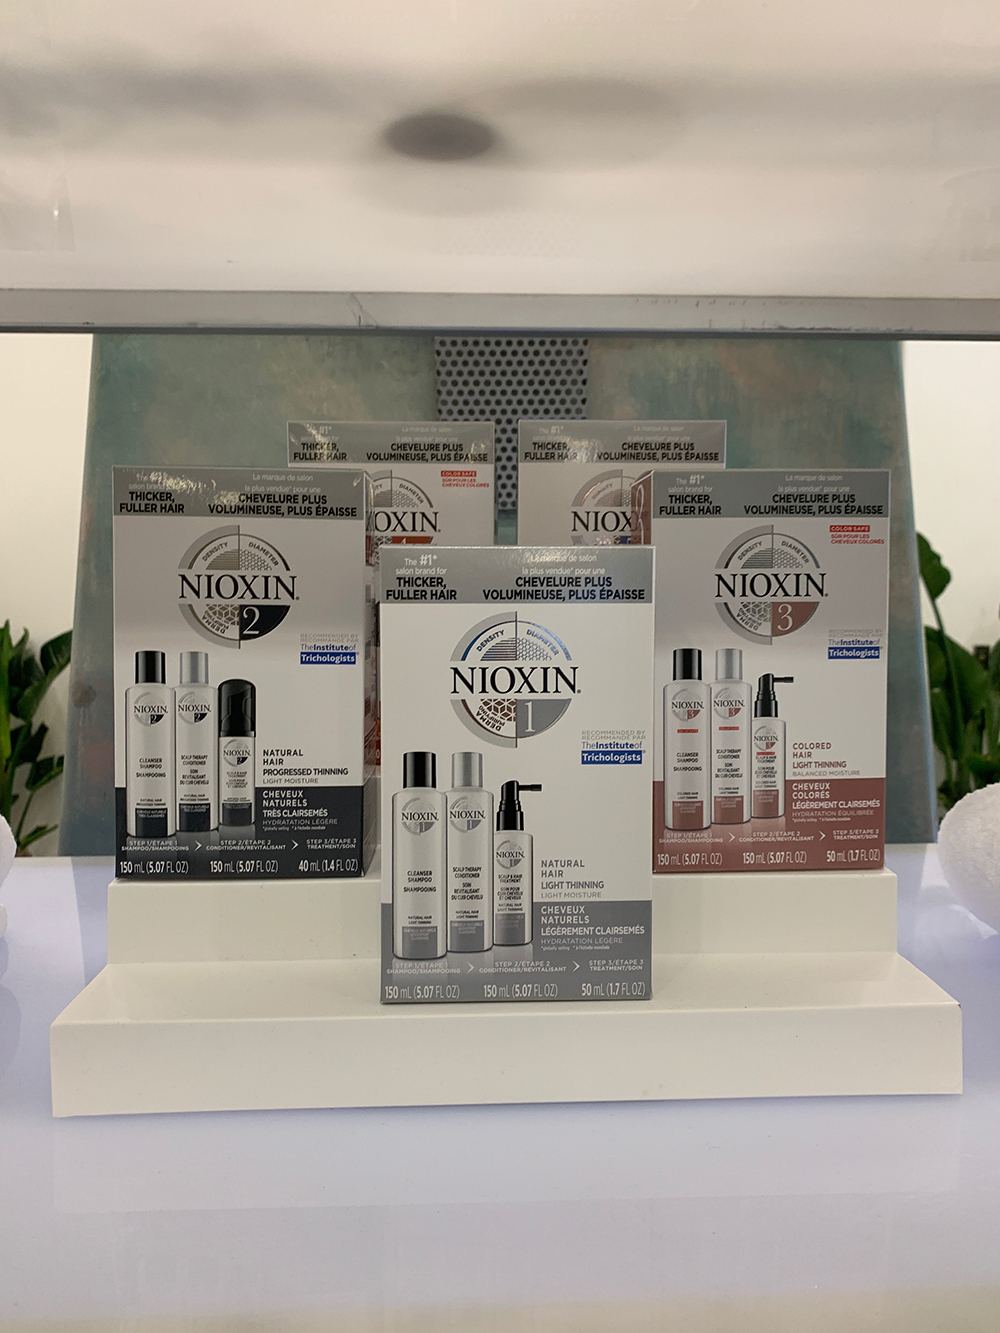 Nioxin products are available in multiple formulas for different hair needs.